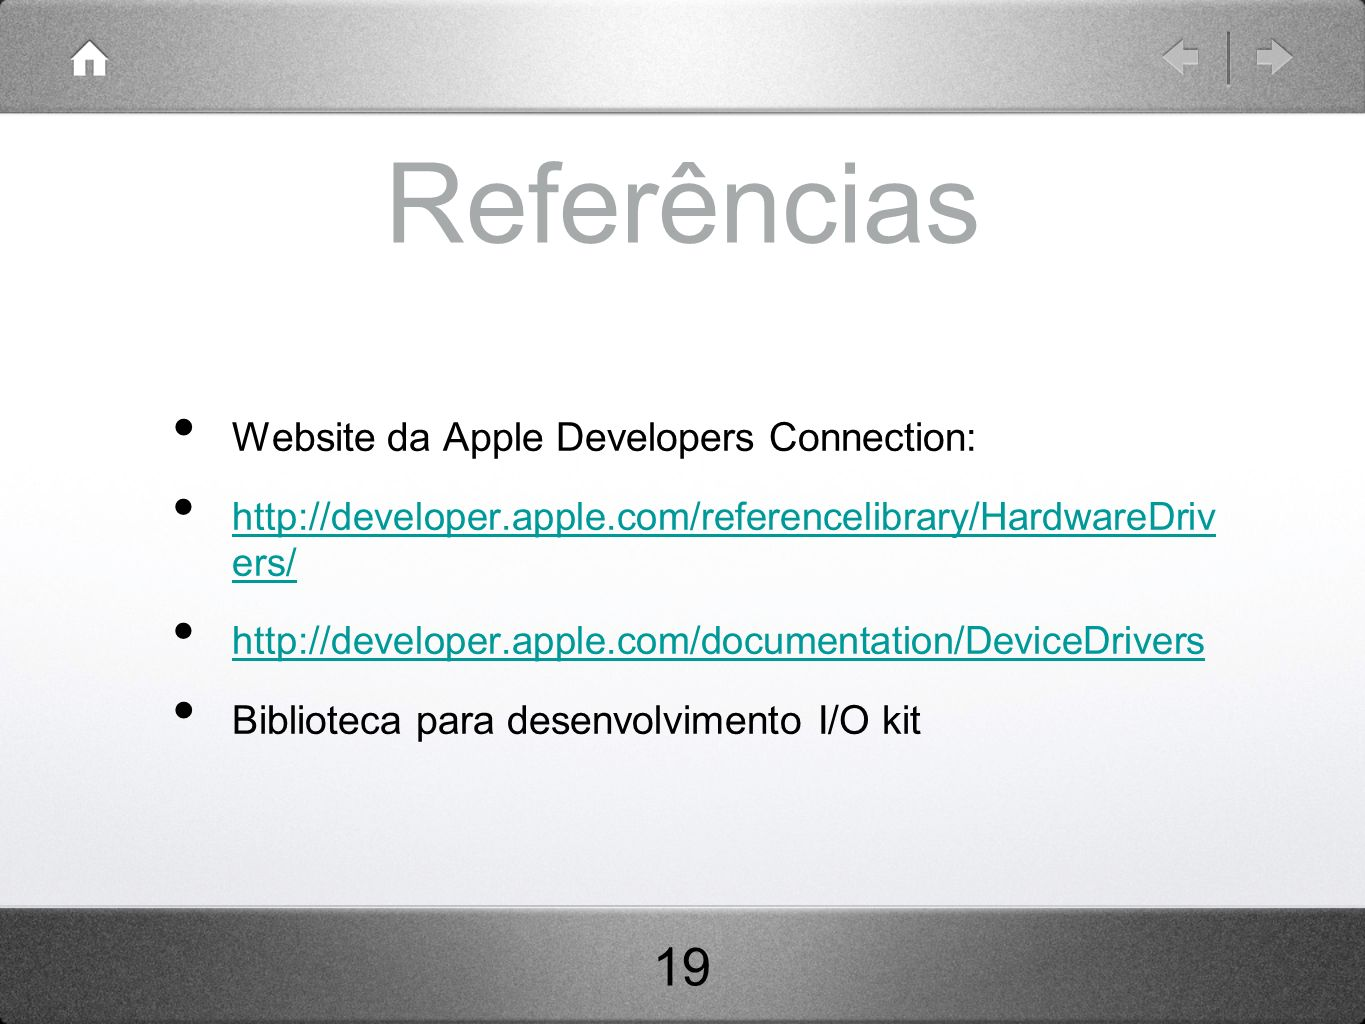 Referências Website da Apple Developers Connection: http://developer.apple.com/referencelibrary/HardwareDriv ers/ http://developer.apple.com/reference